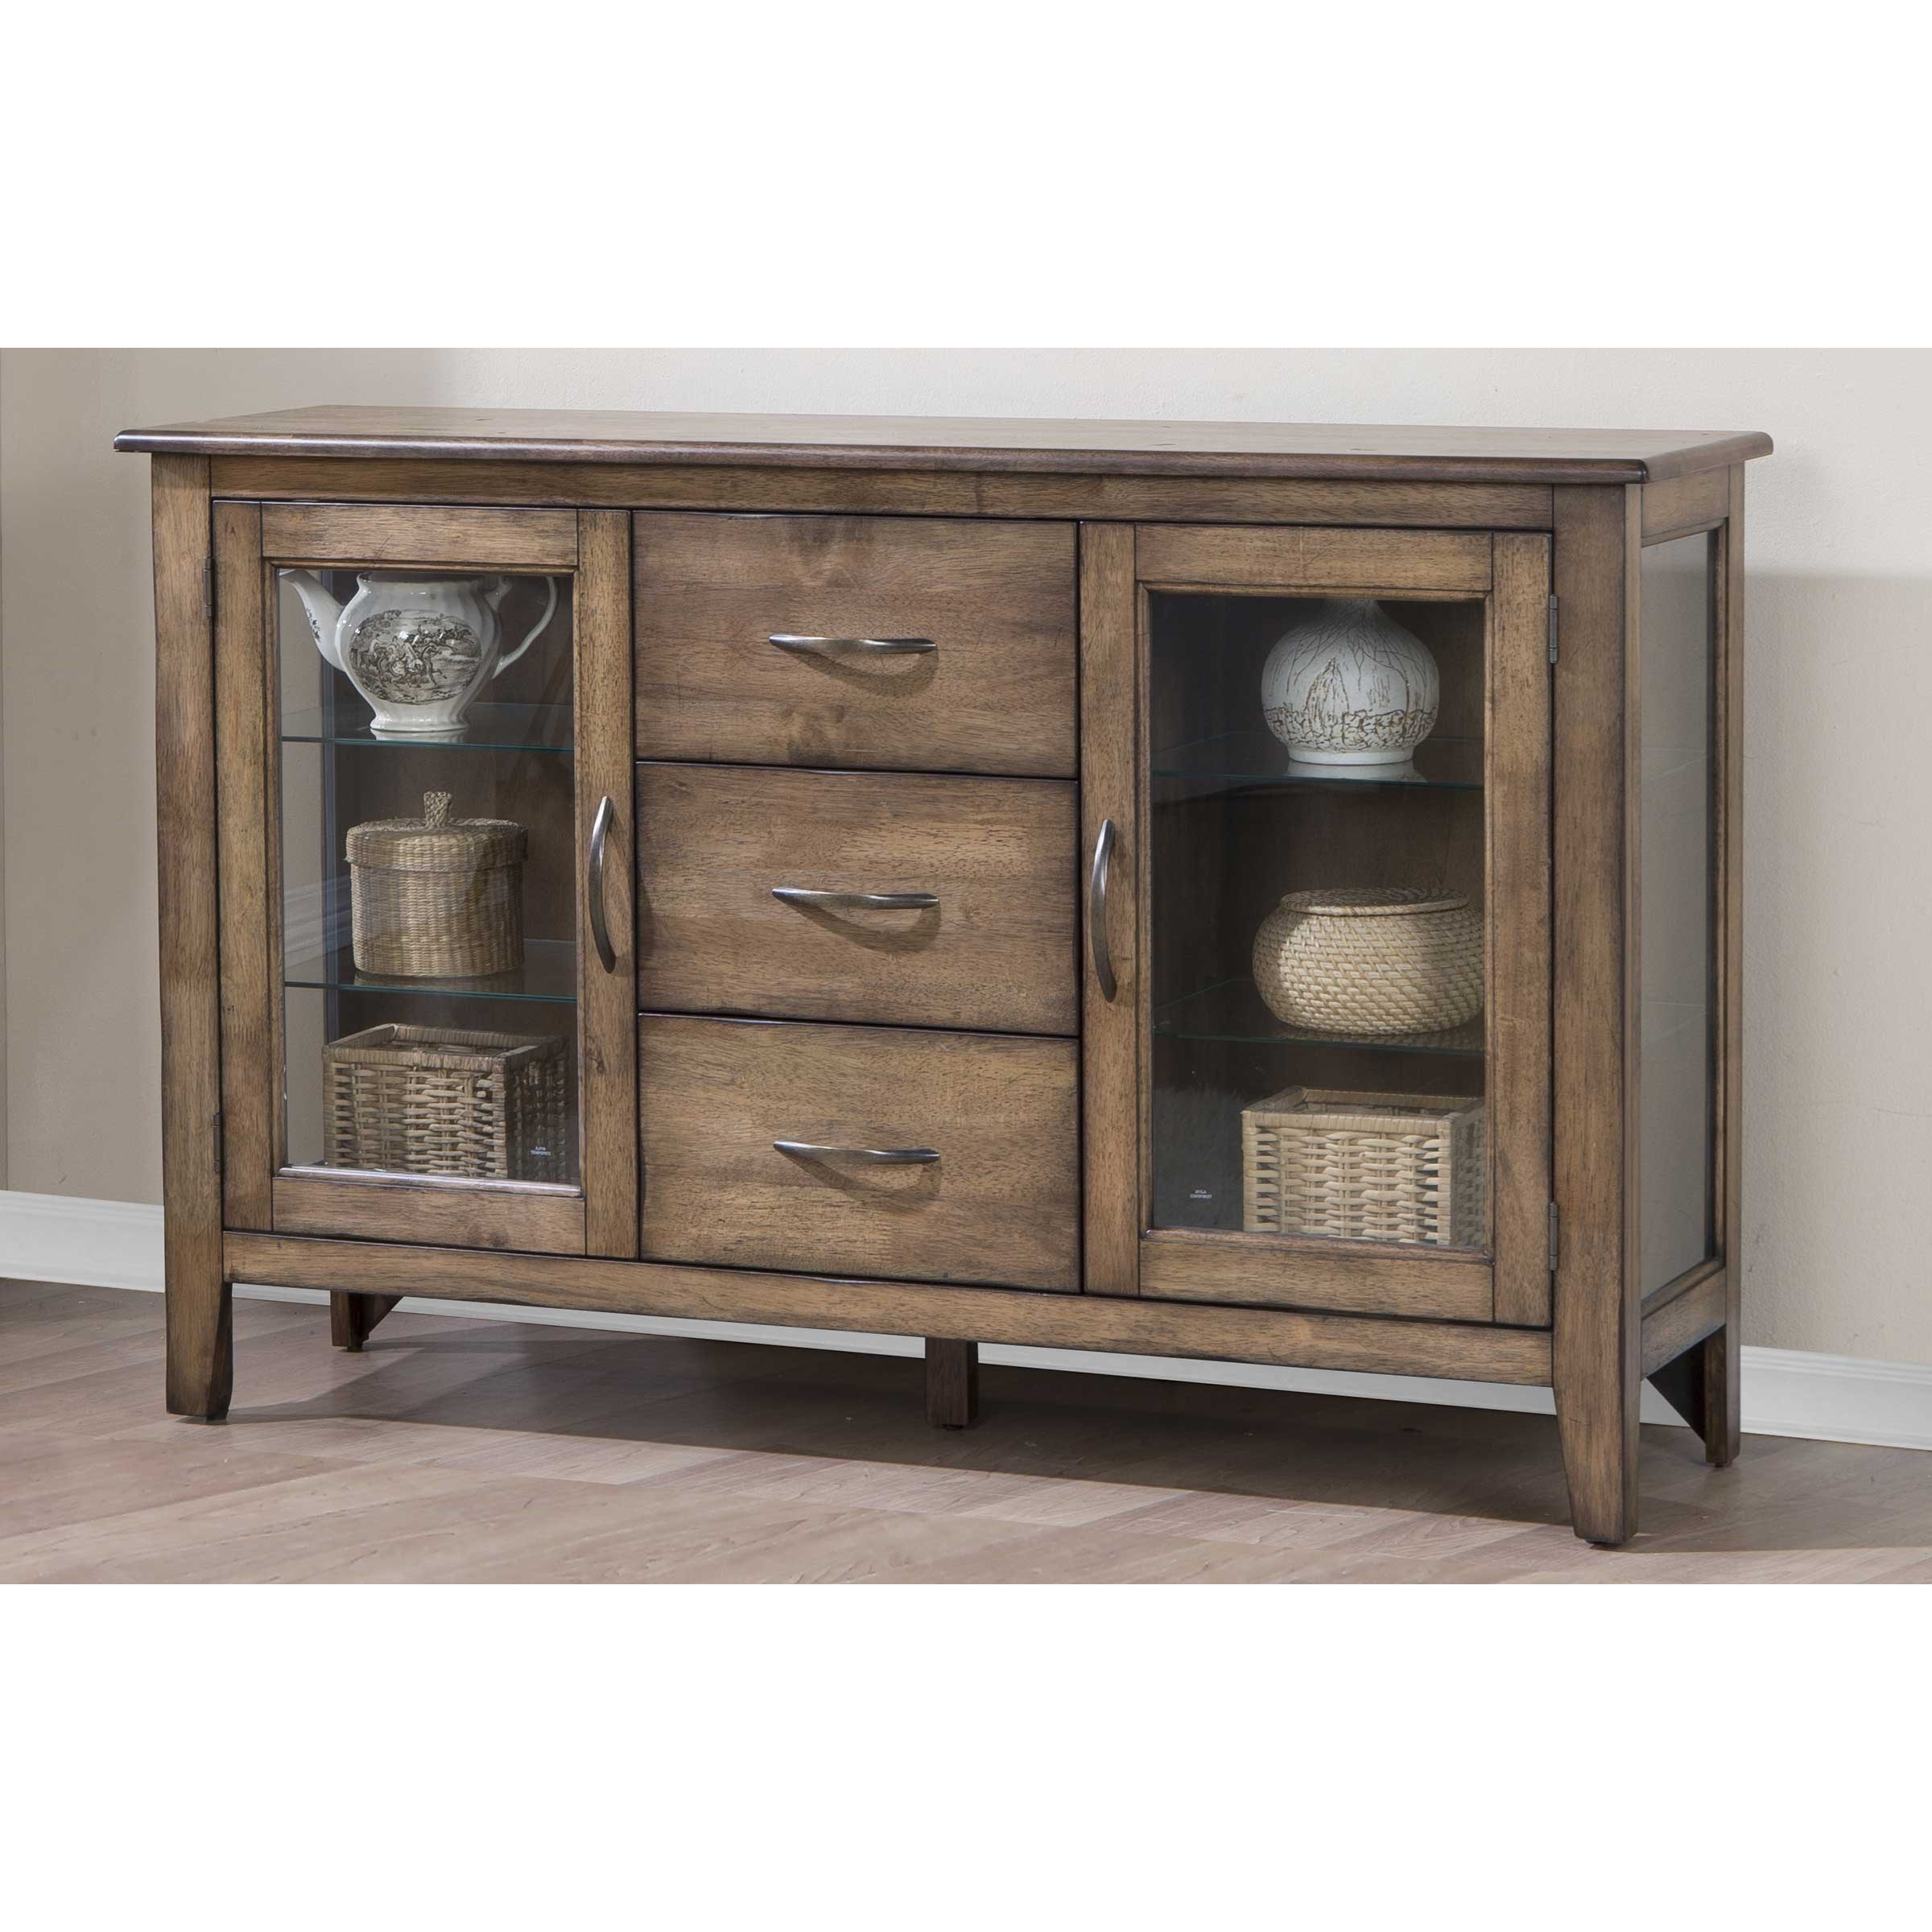 Carmel Sideboard by Winners Only at Crowley Furniture & Mattress